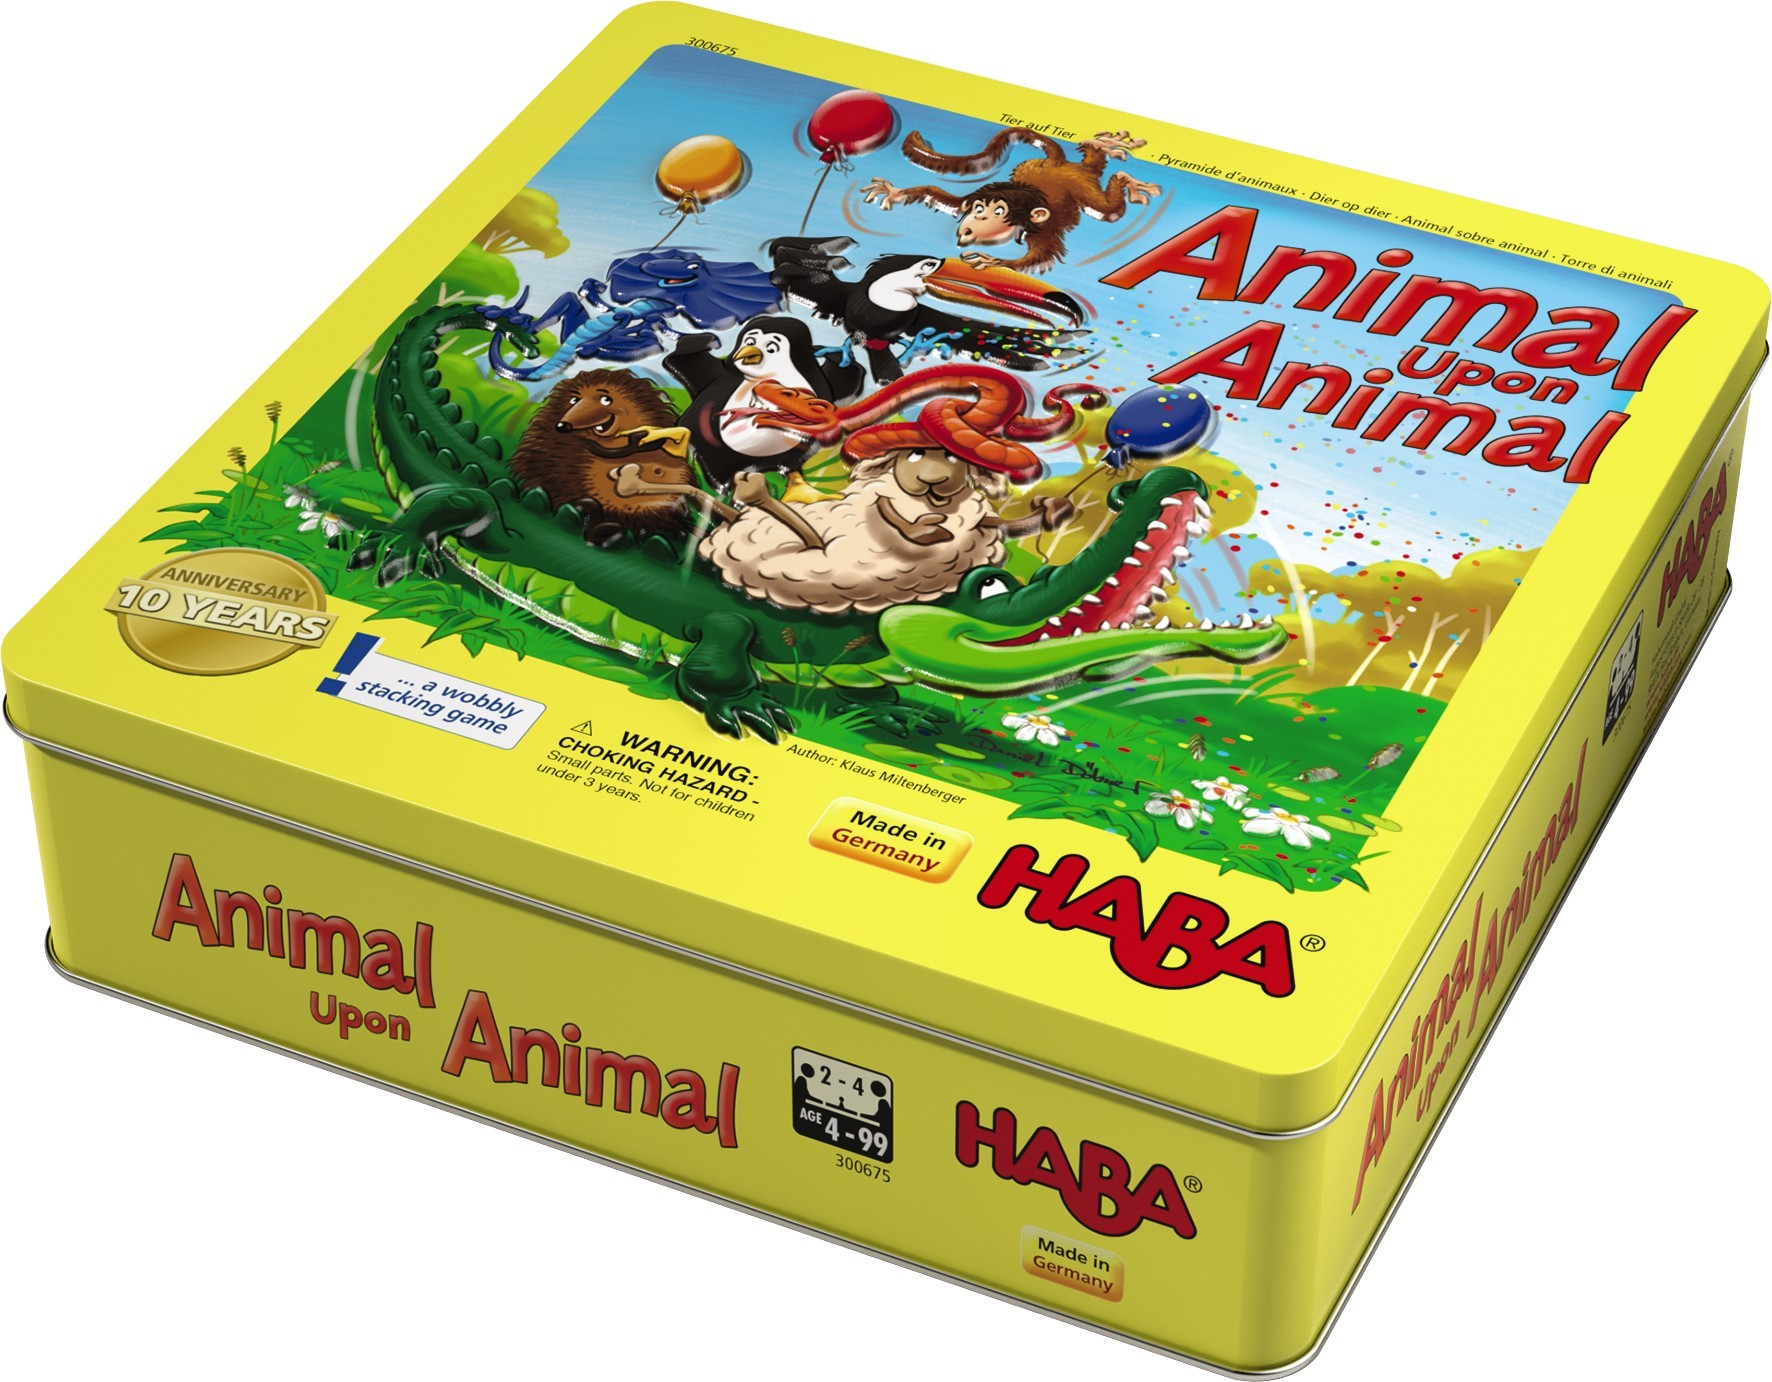 Monopolis Animal Upon Animal Base Tabletop, Board and Card Game